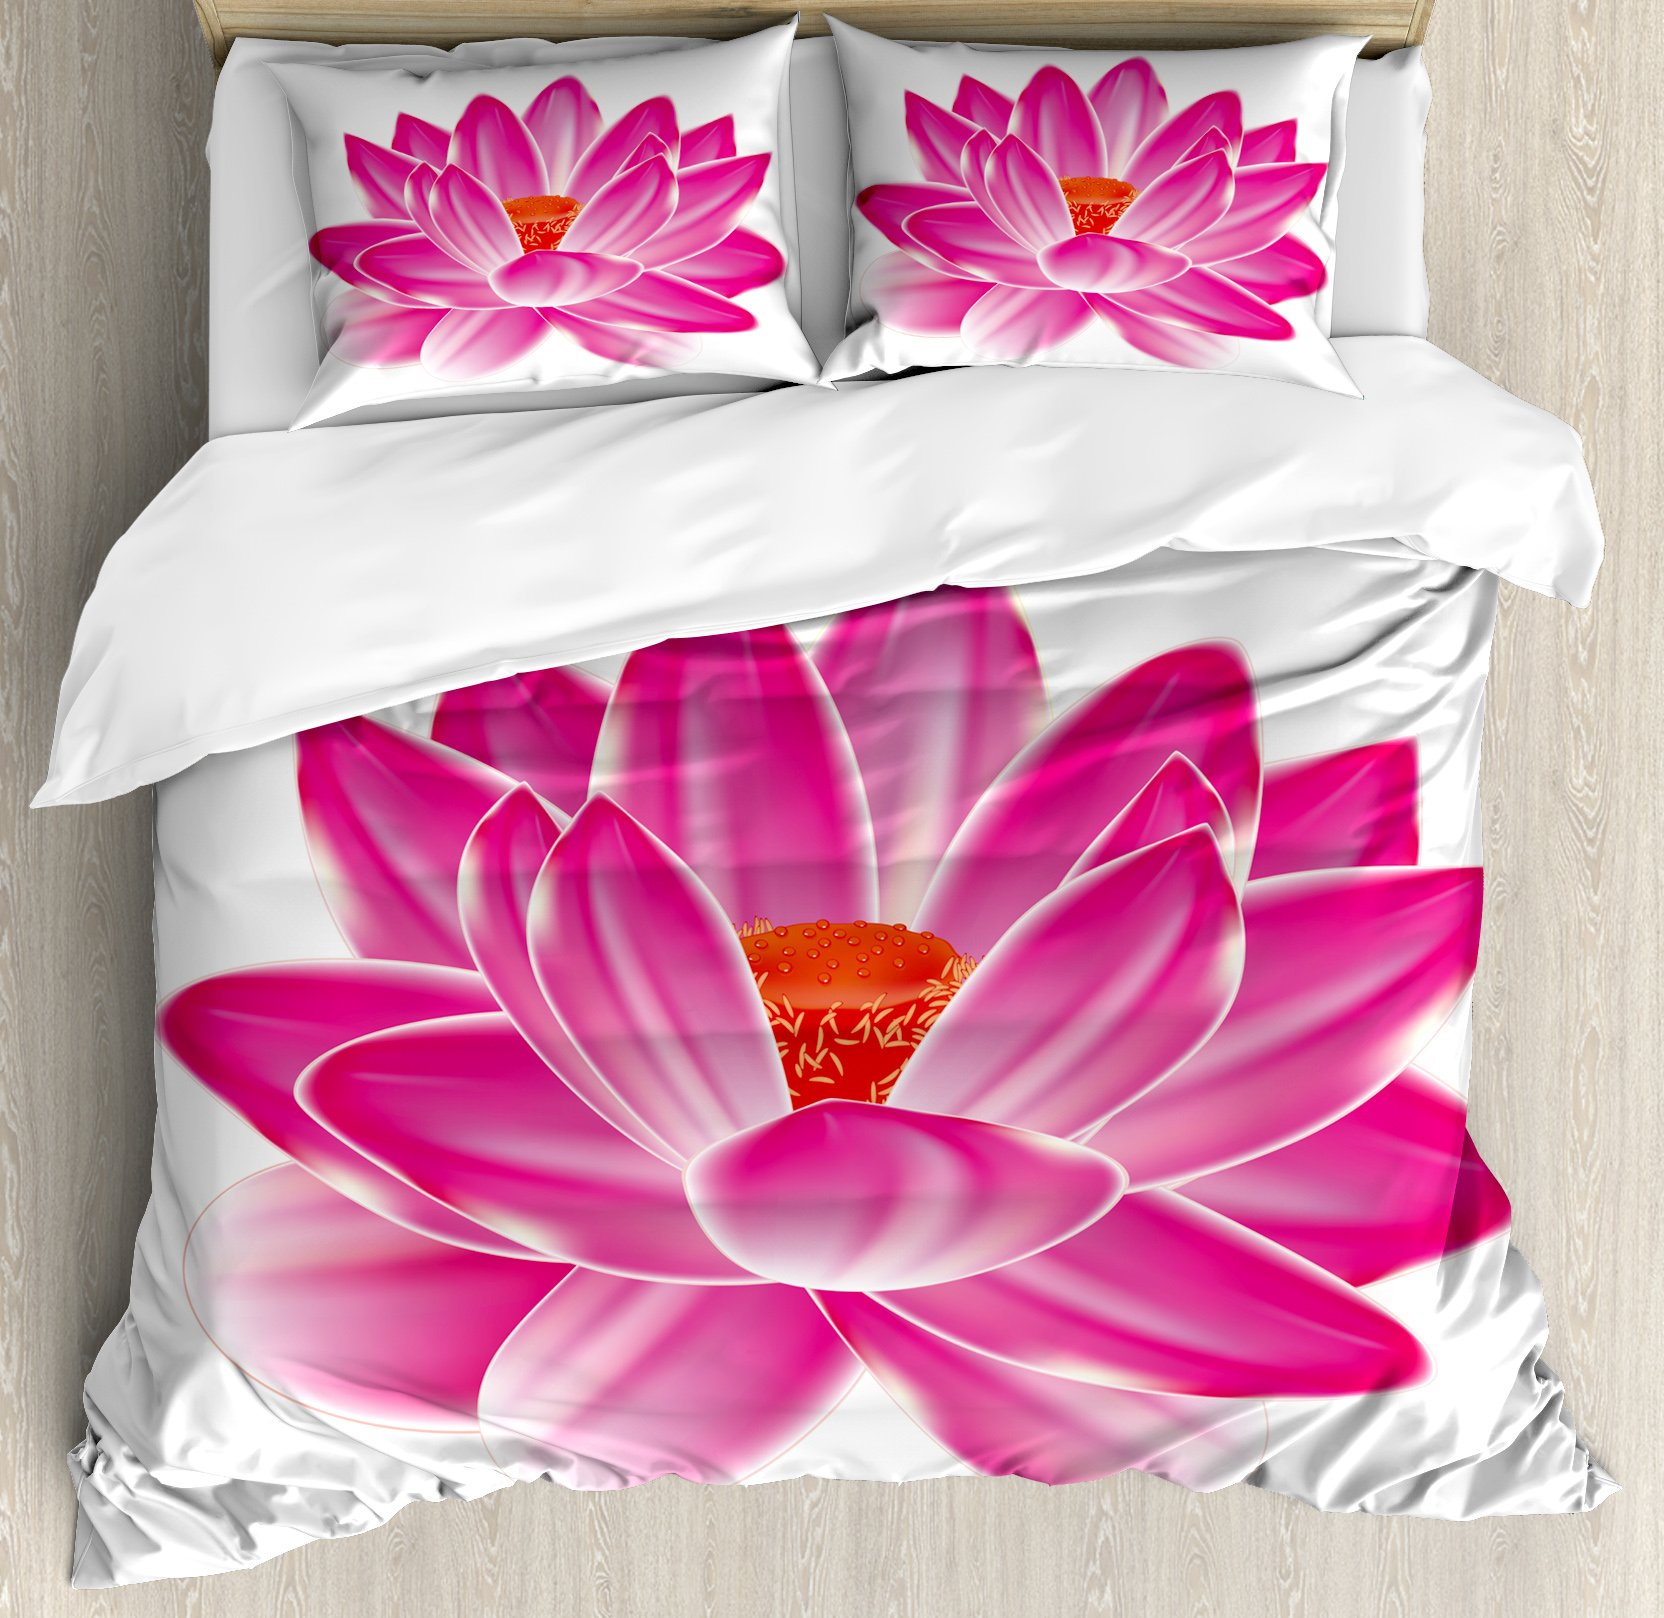 Lotus Duvet Cover Set King Size by Ambesonne, Vibrant Lotus Flower Pattern Spa Zen Yoga Asian Balance Energy Lifestyle Artsy Image, Decorative 3 Piece Bedding Set with 2 Pillow Shams, Magenta Red